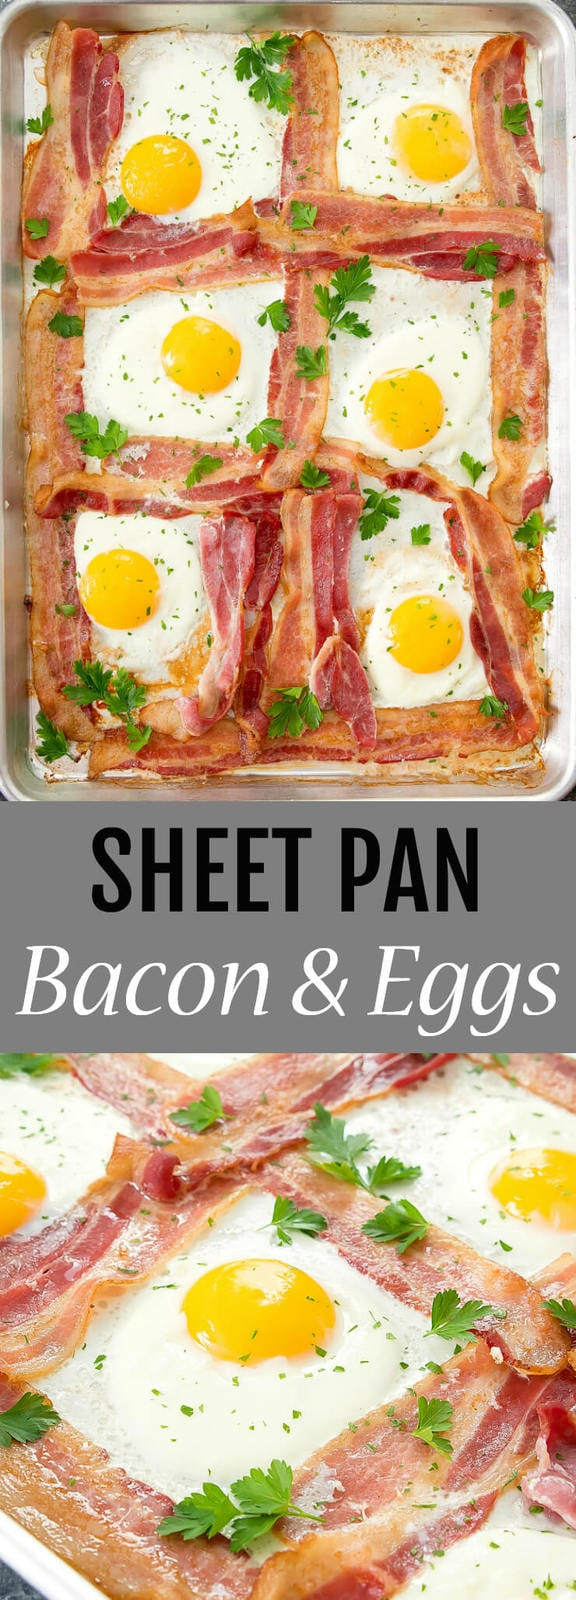 Sheet Pan Bacon and Eggs. An easy solution for breakfast or brunch for your family.